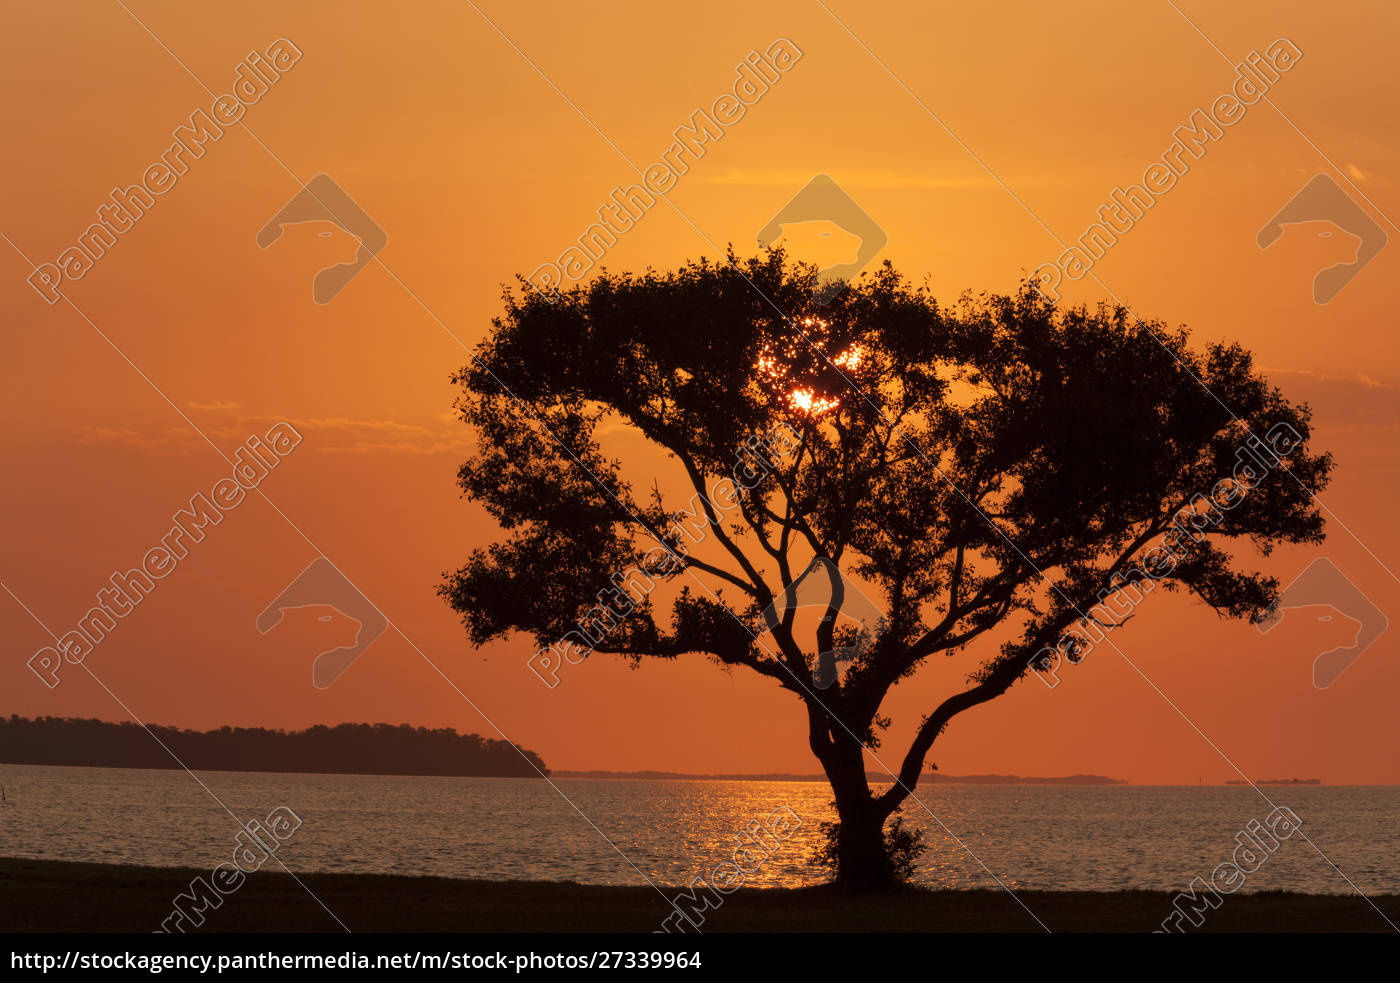 usa, florida, everglades, nationalpark, flamingo, campingplatz., baum, bei, sonnenaufgang - 27339964